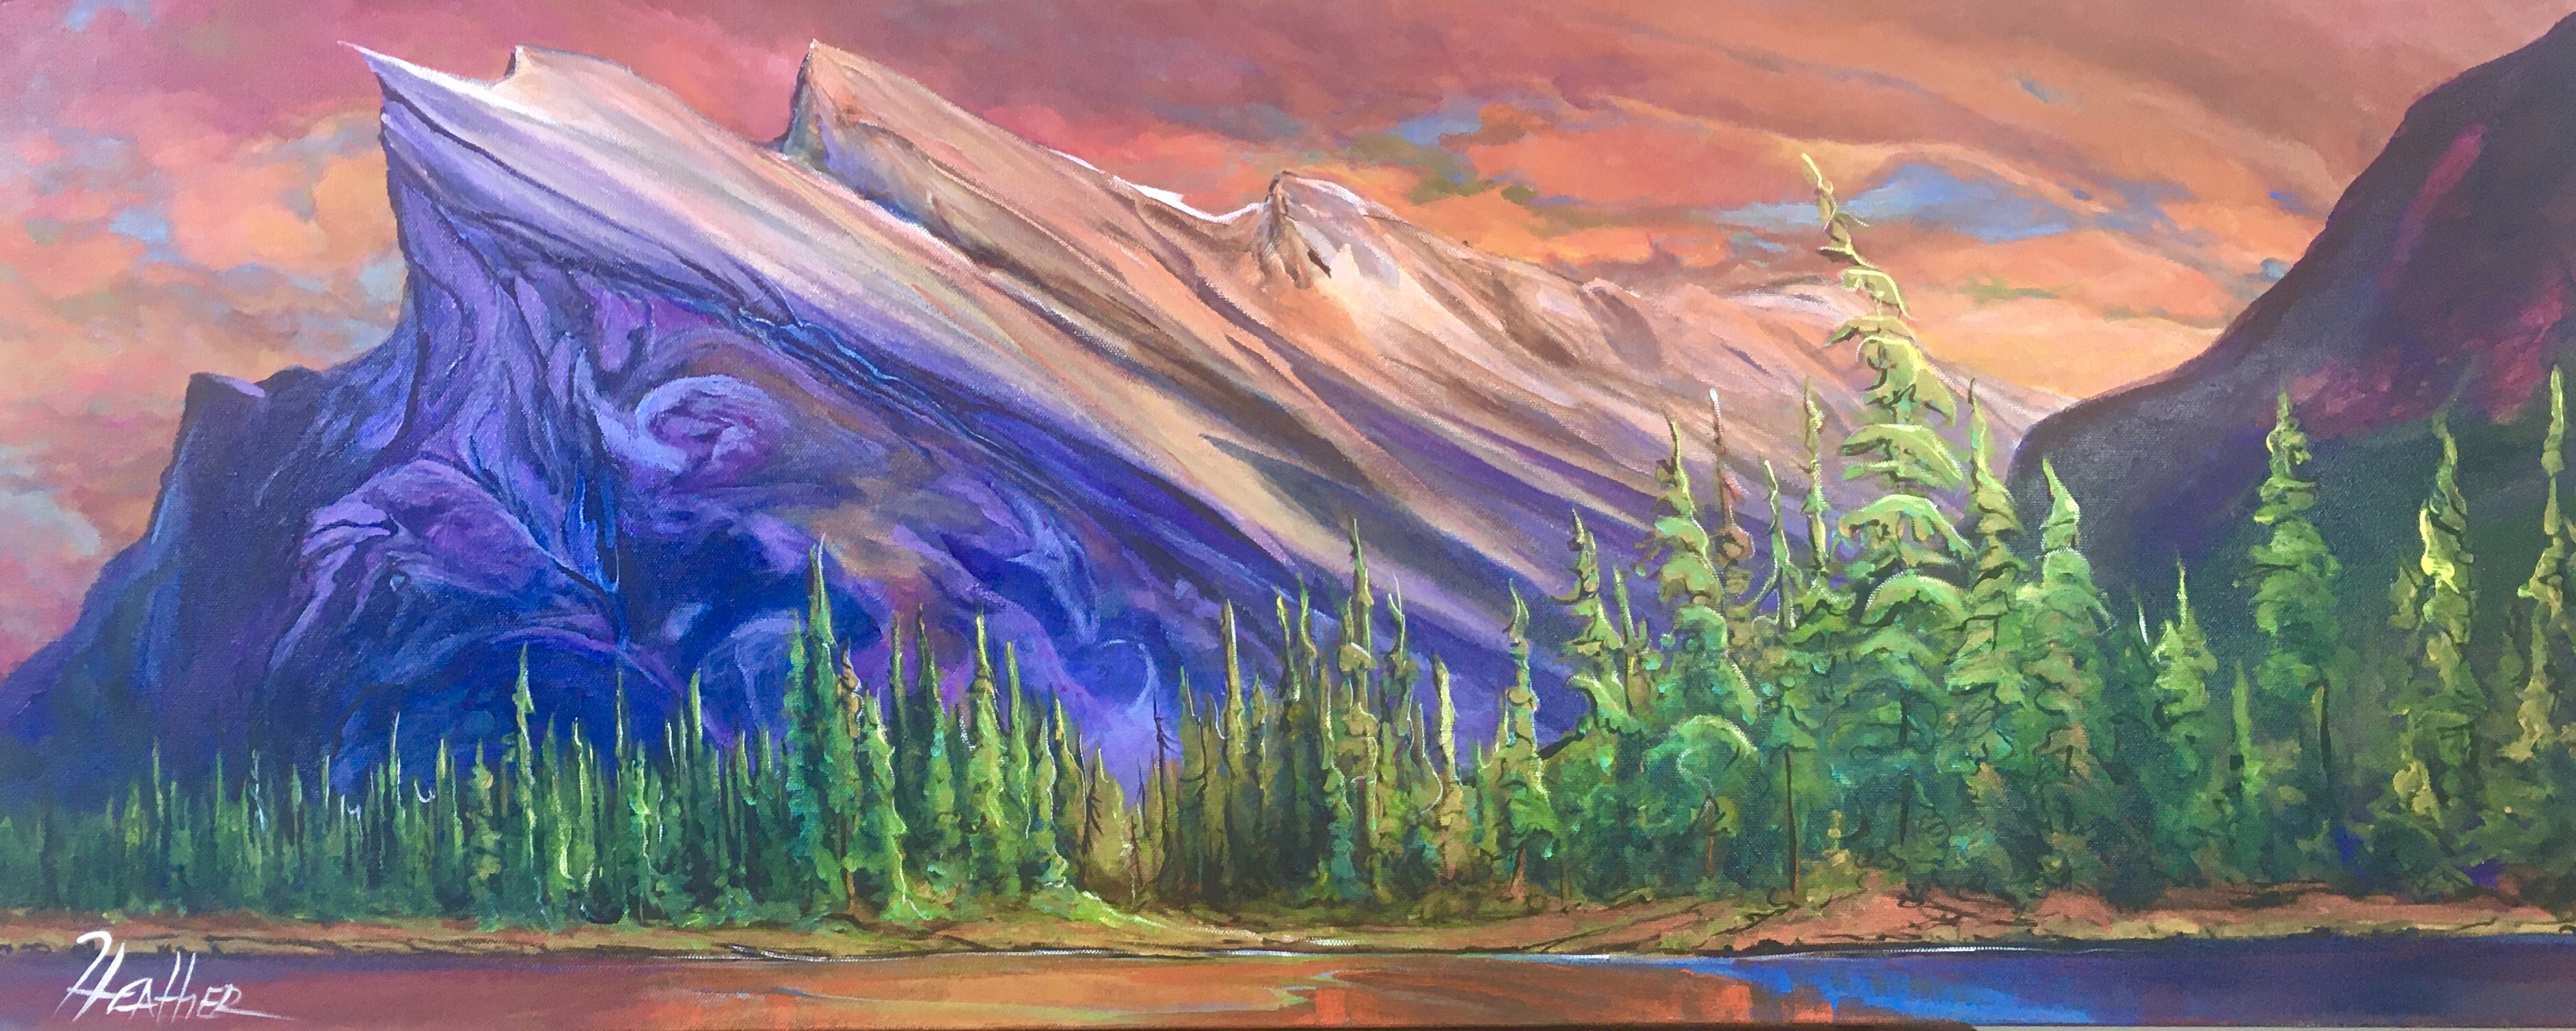 As Night Falls 16 x 40 SOLD